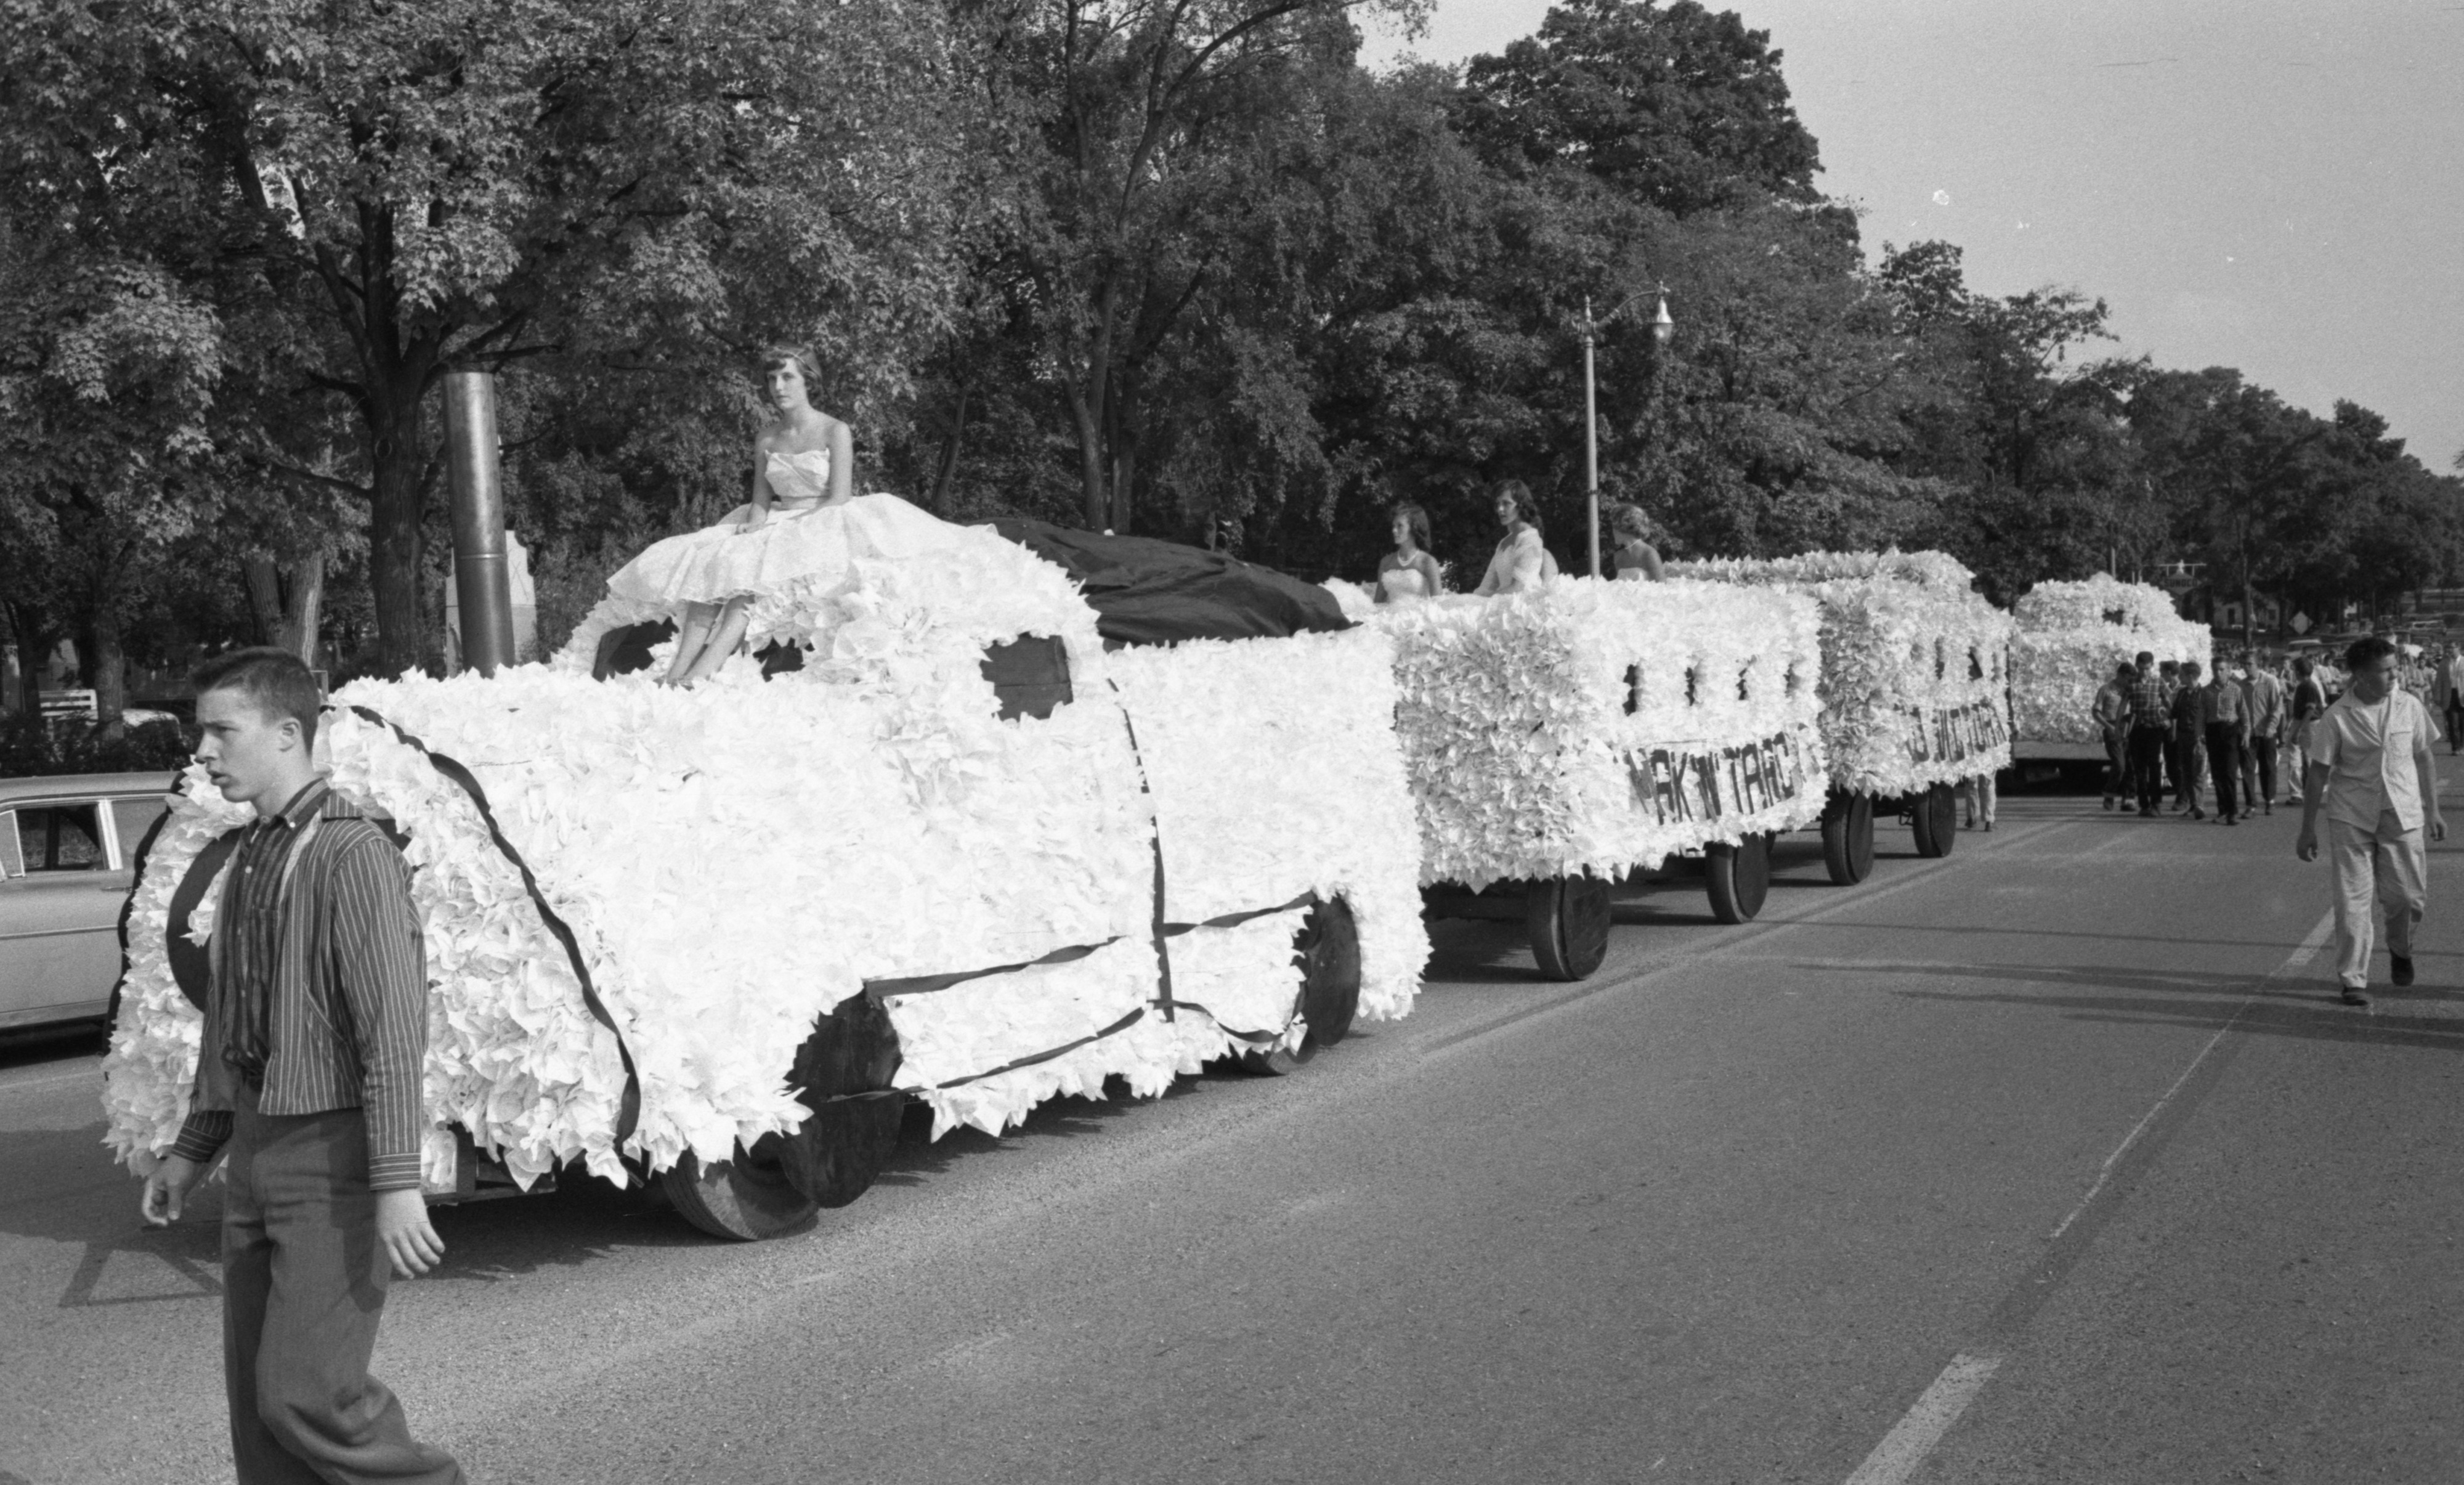 Floats Roll Into Downtown Dexter In The High School Homecoming Parade, October 1959 image